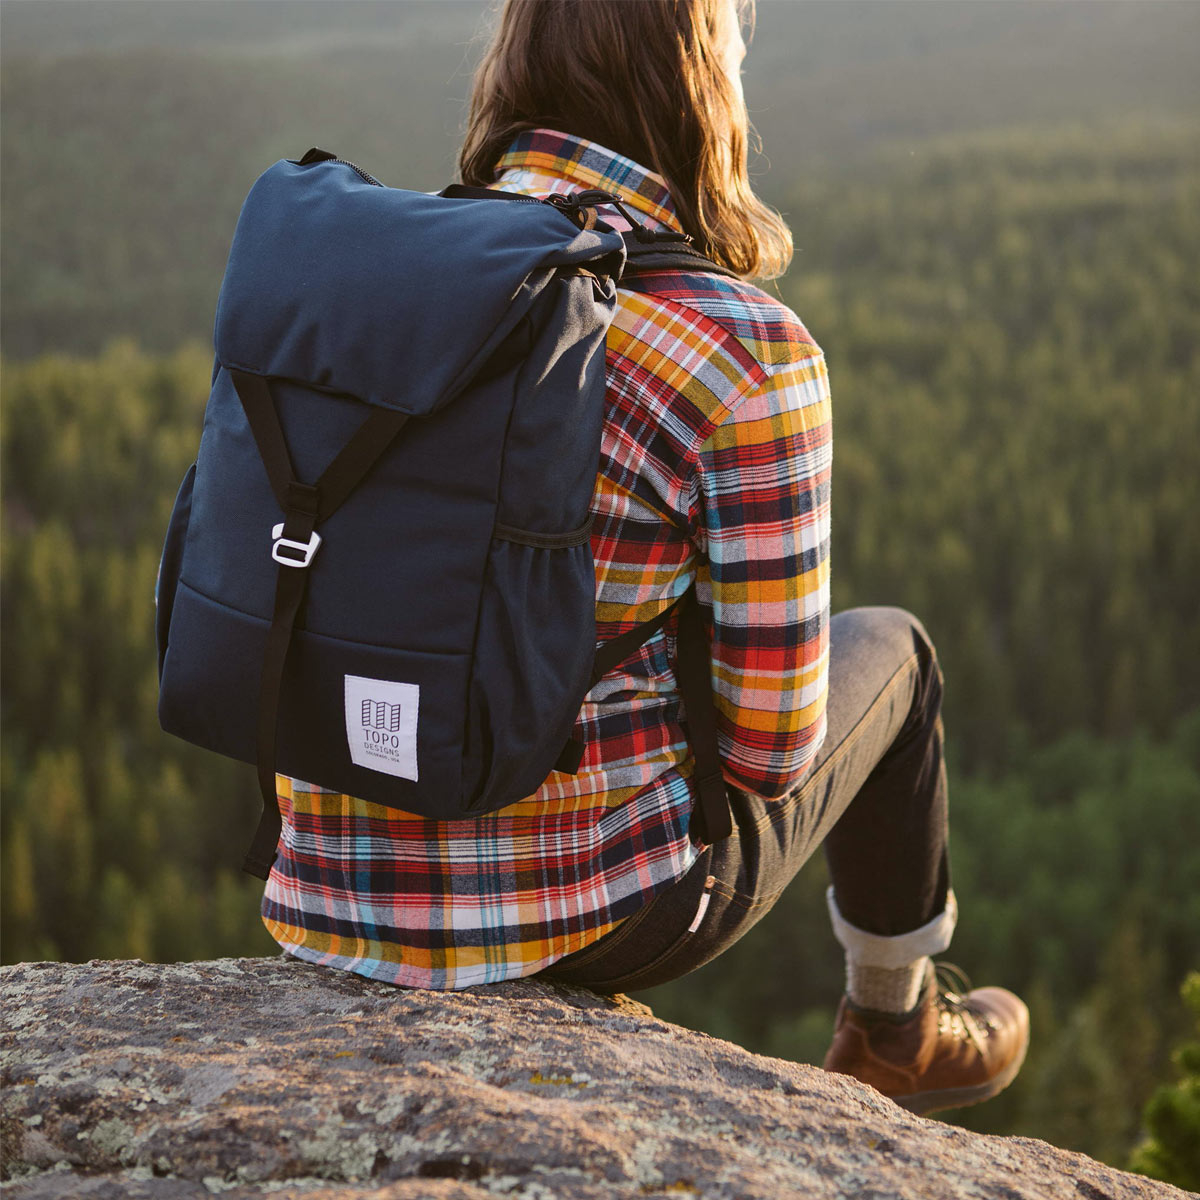 Topo Designs Y-Pack Navy fuses classic style and modern functionality